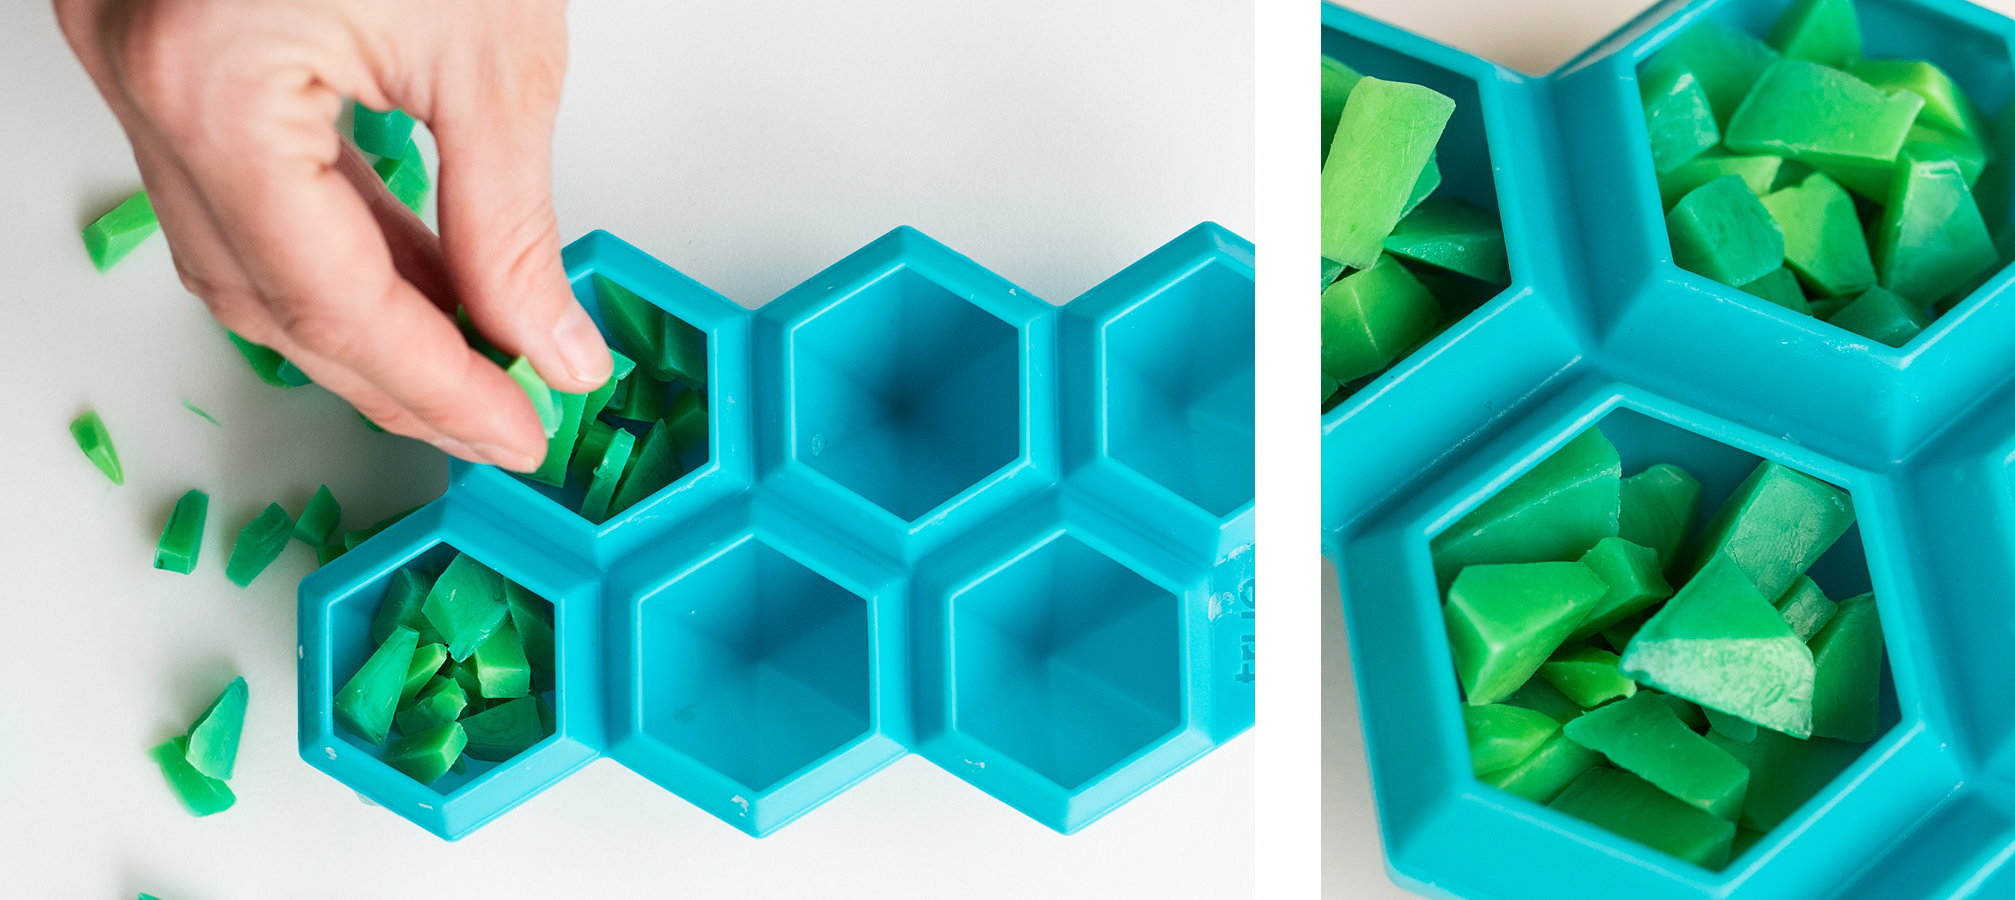 Placing small melt and pour soap pieces into diamond shape silicone mold